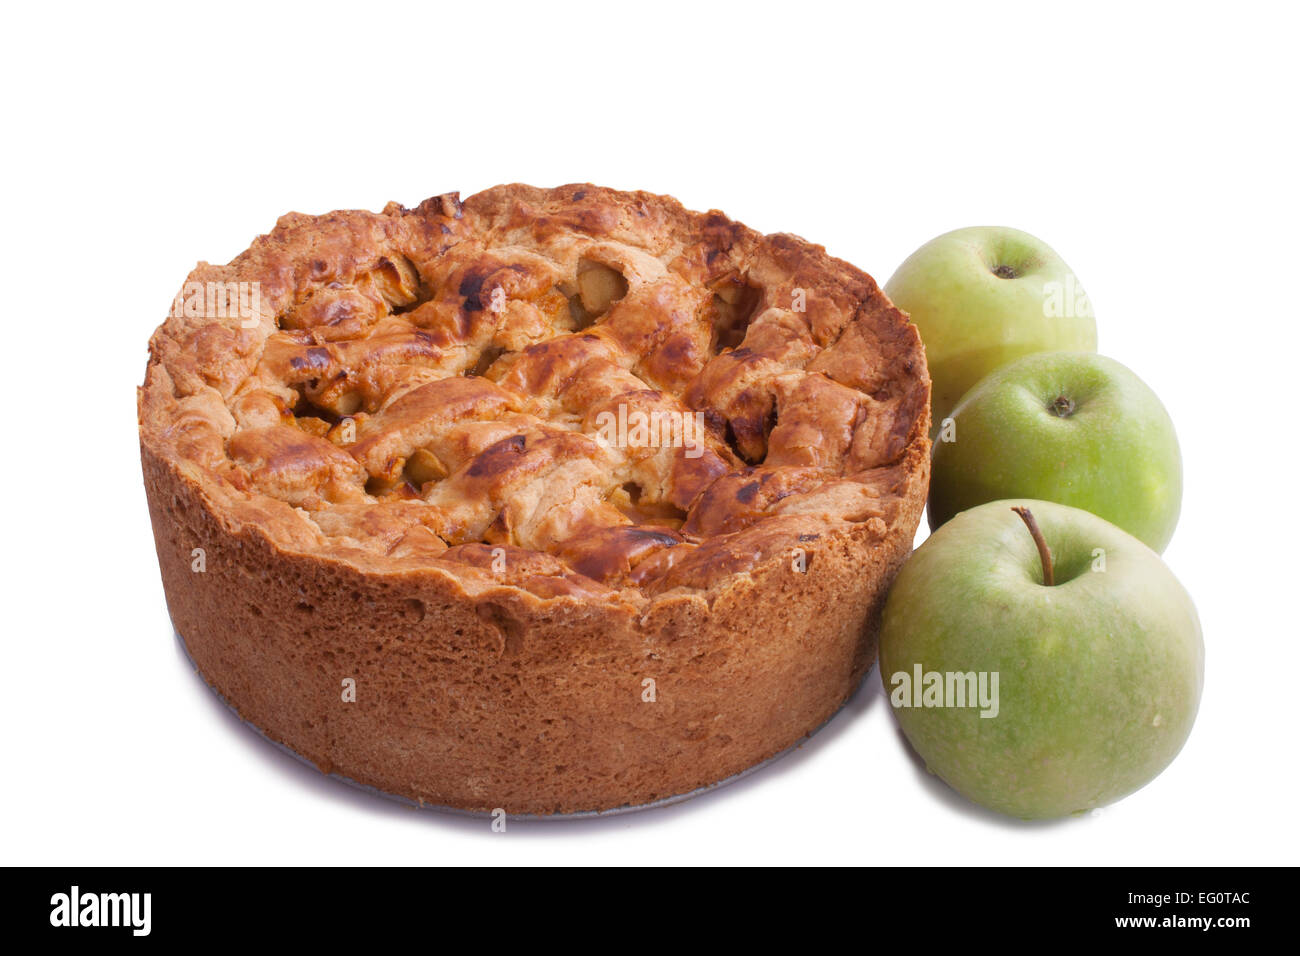 Home made apple pie isolated on a white background - Stock Image